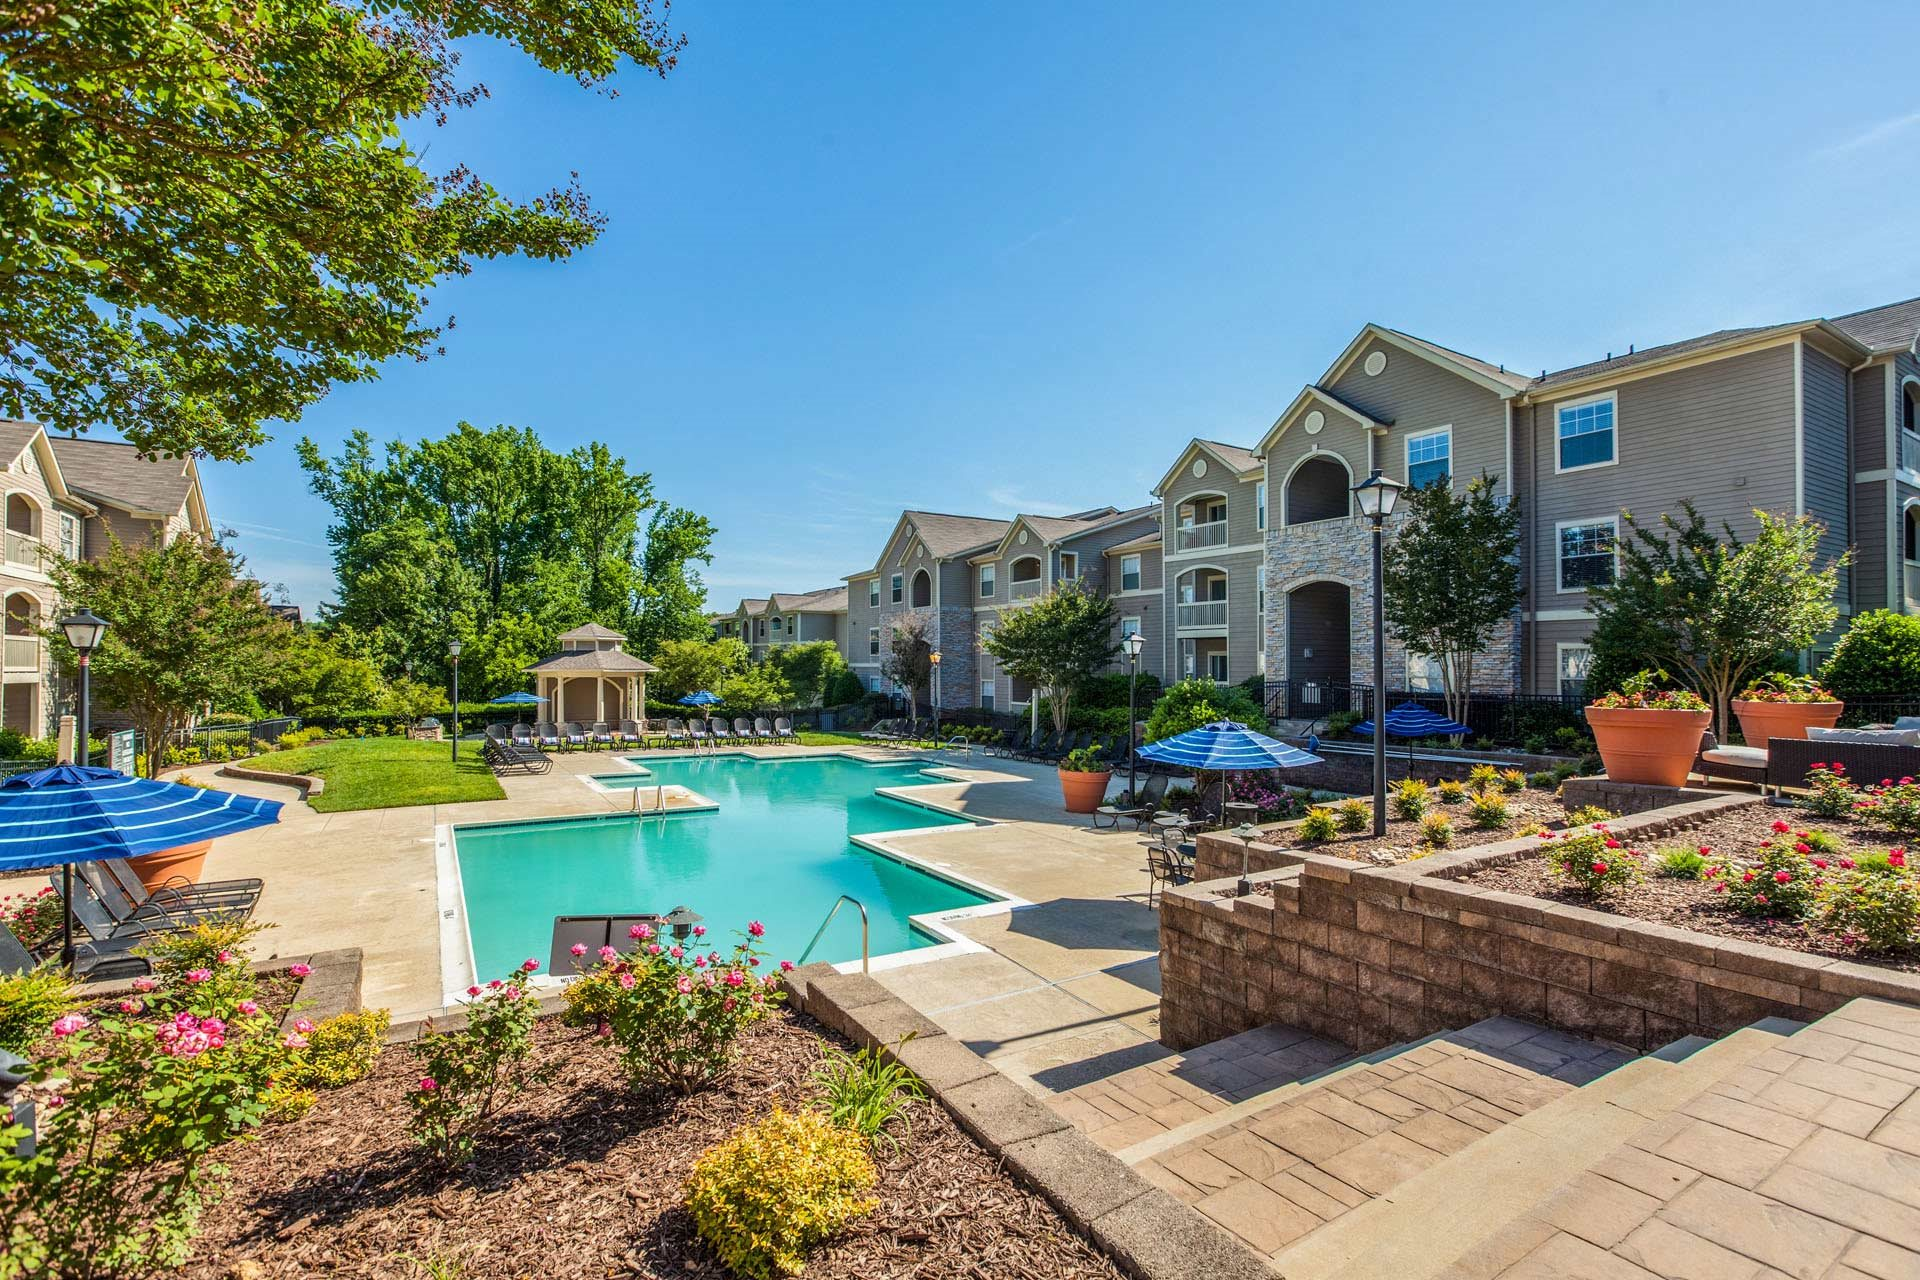 Outdoor Swimming Pool at Haven at Patterson Place, North Carolina, 27707